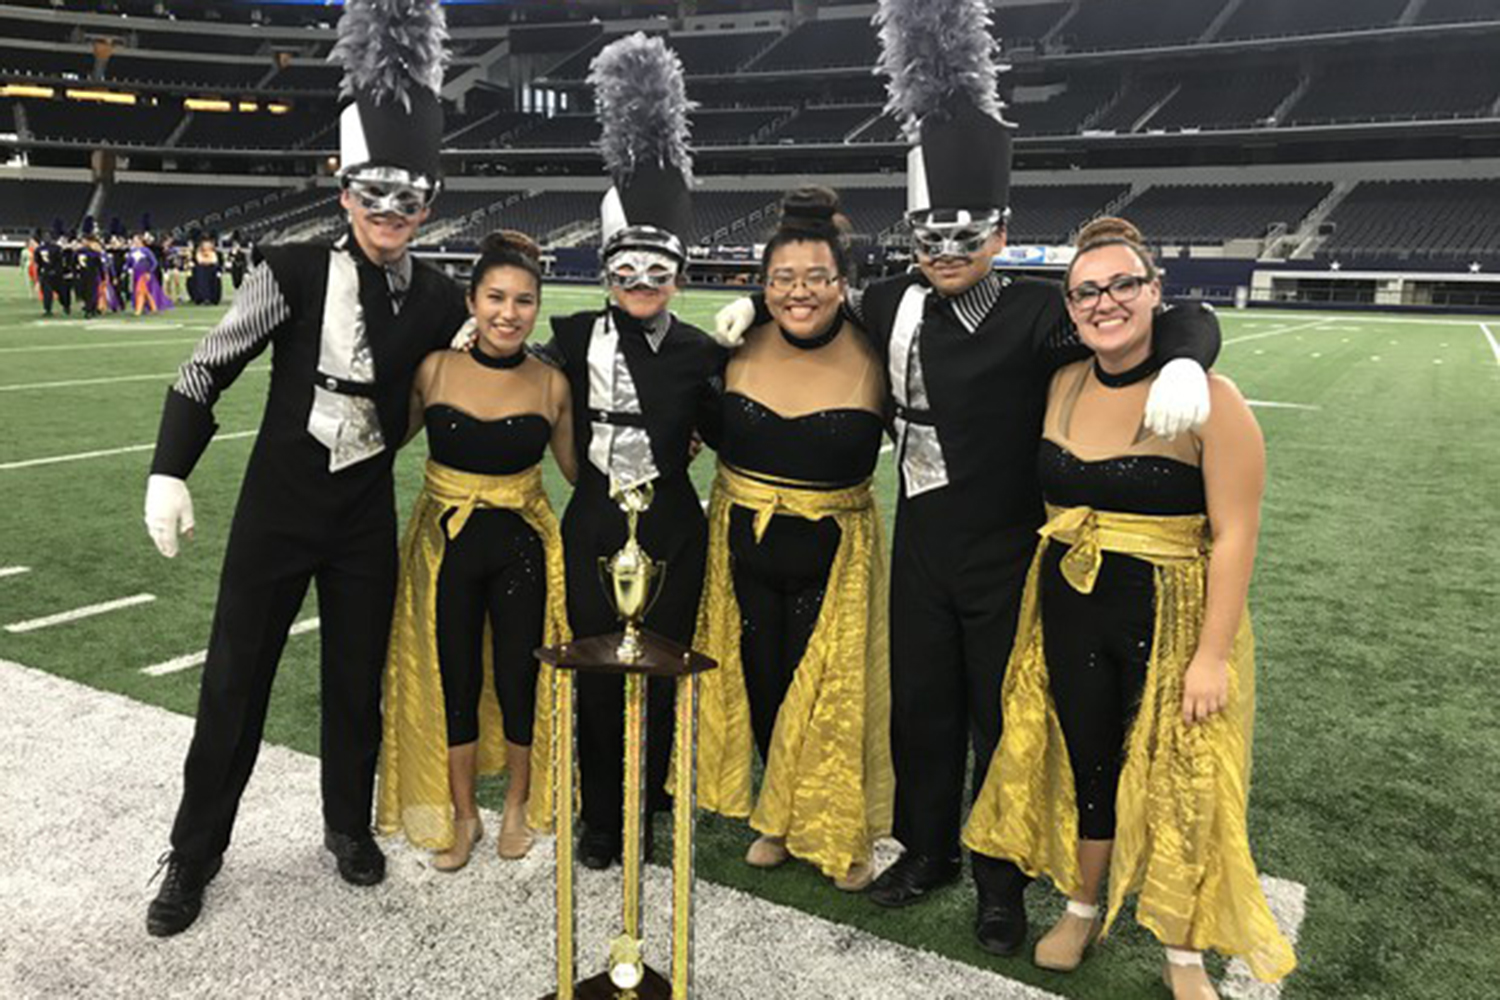 Drum Majors and Guard Captains celebrate at the USBands Southwestern Championships in Dallas, TX on Saturday Oct. 21.